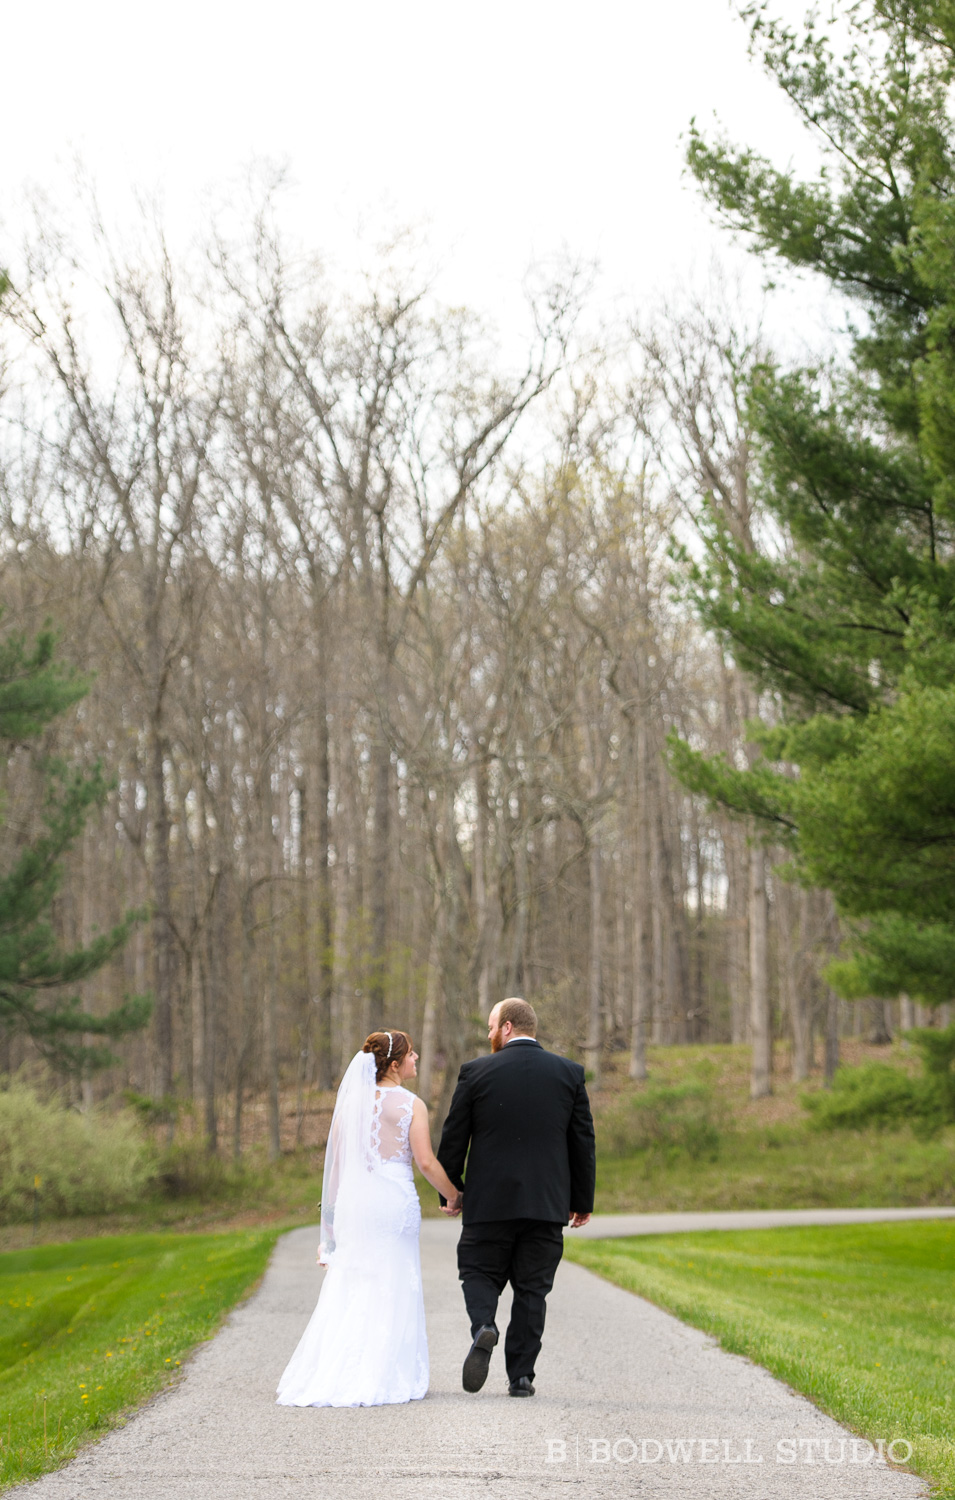 Grogg_Wedding_Blog_029.jpg